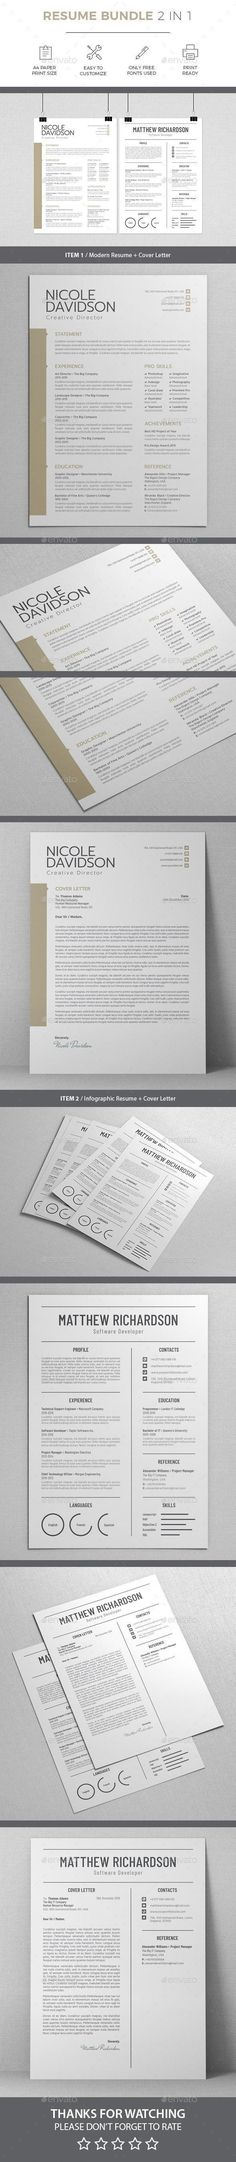 Clean & Modern Resume/cv template to help you land that great job. The flexible page designs are easy to use and customize, so you can quickly tailor-make your resume for any opportunity. Indesign Resume Template, One Page Resume Template, Sample Resume Templates, Modern Resume Template, Resume Design Template, Creative Resume Templates, Print Templates, Cv Template, Resume Words